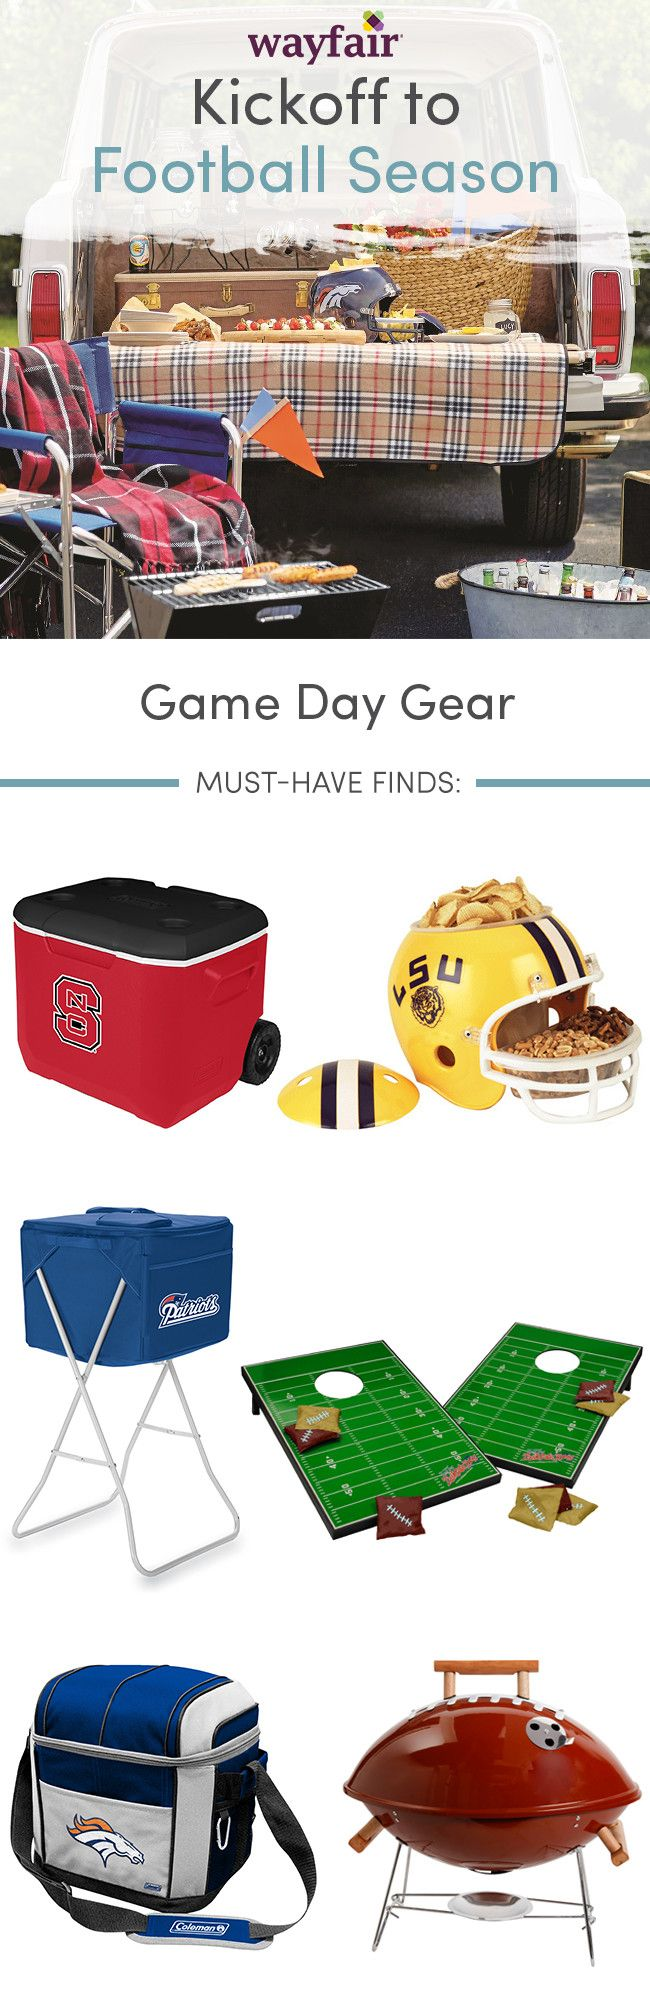 Top football season finds to help you host the best tailgate party at home! With so many game day options, cheer on your team in style. Visit Wayfair and sign up today to get access to exclusive deals everyday up to 70% off. Free shipping on all orders over $49.